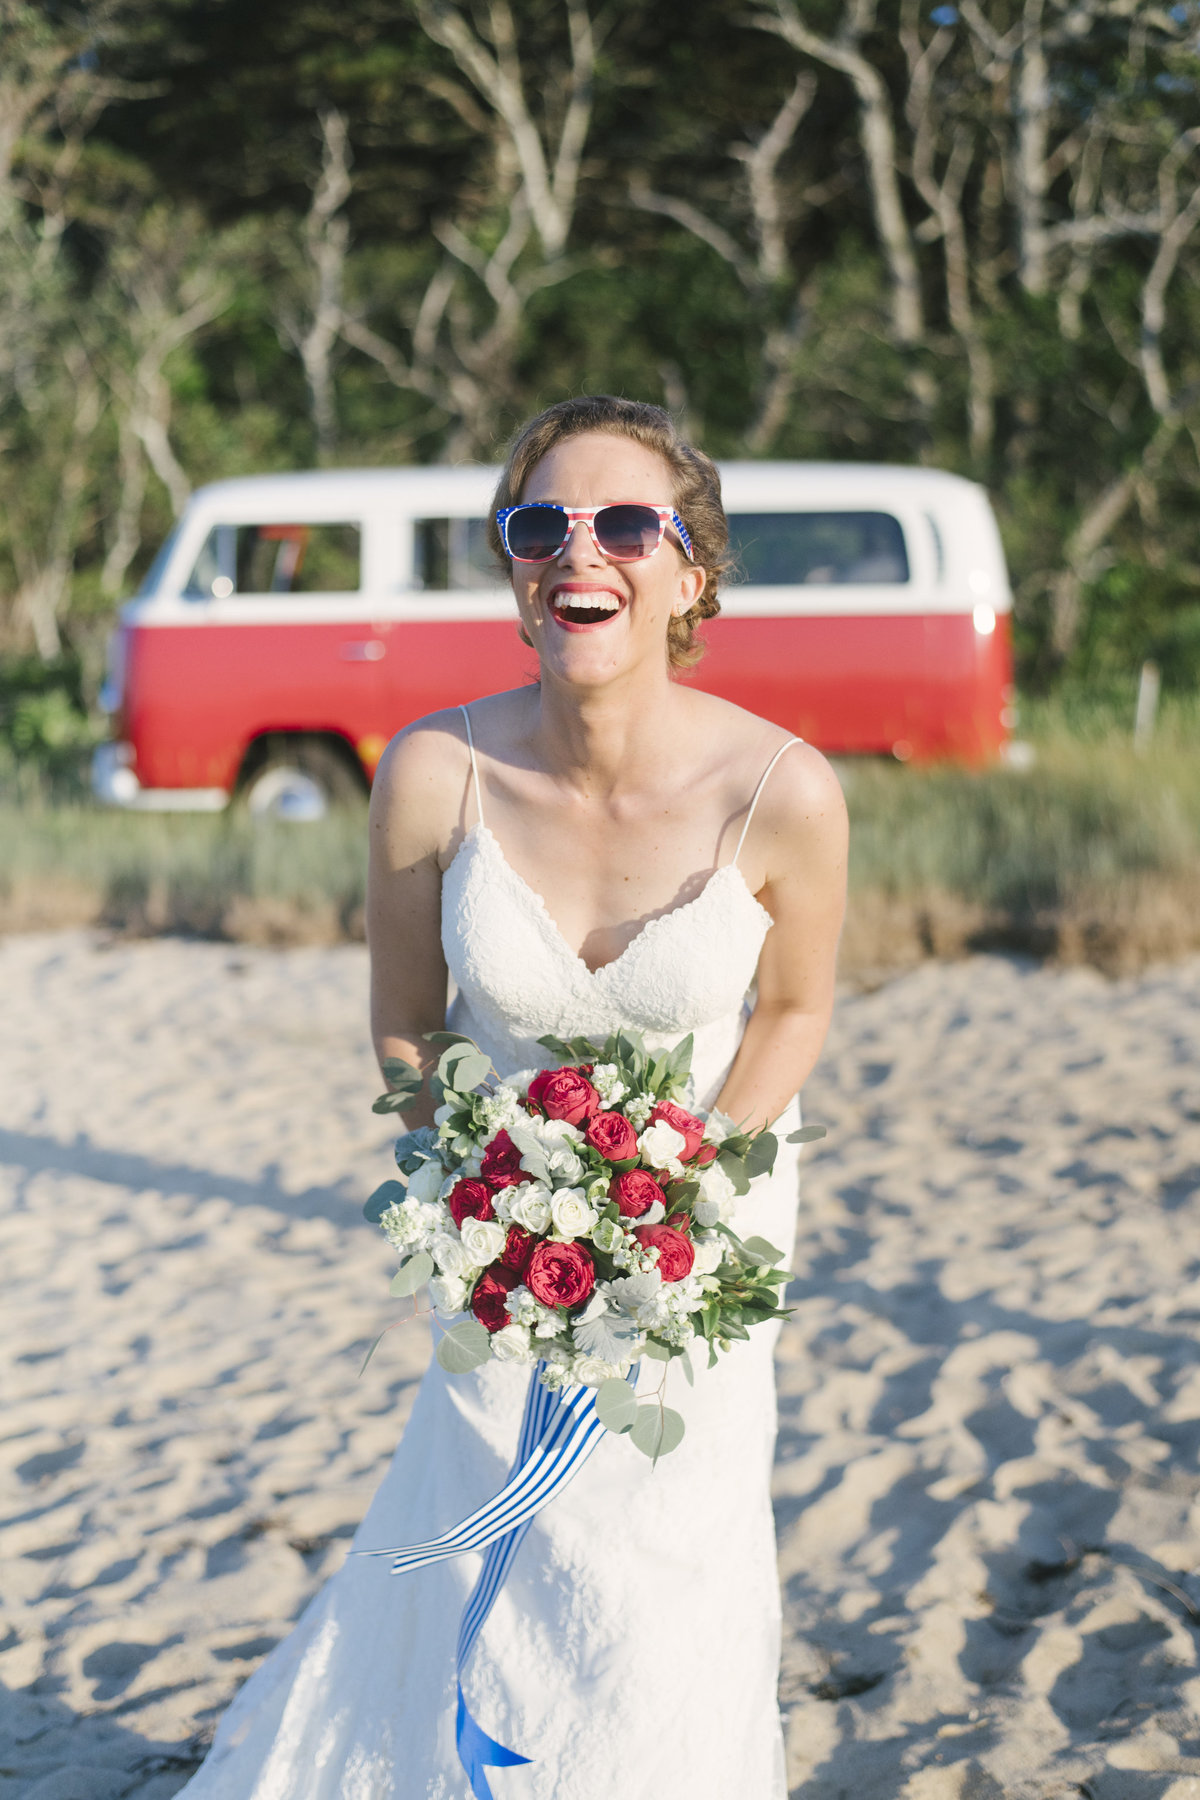 Monica-Relyea-Events-Alicia-King-Photography-Cape-Cod-Anniversary-Shoot-Wedding-Beach-Chatham-Nautical-Summer-Massachusetts79